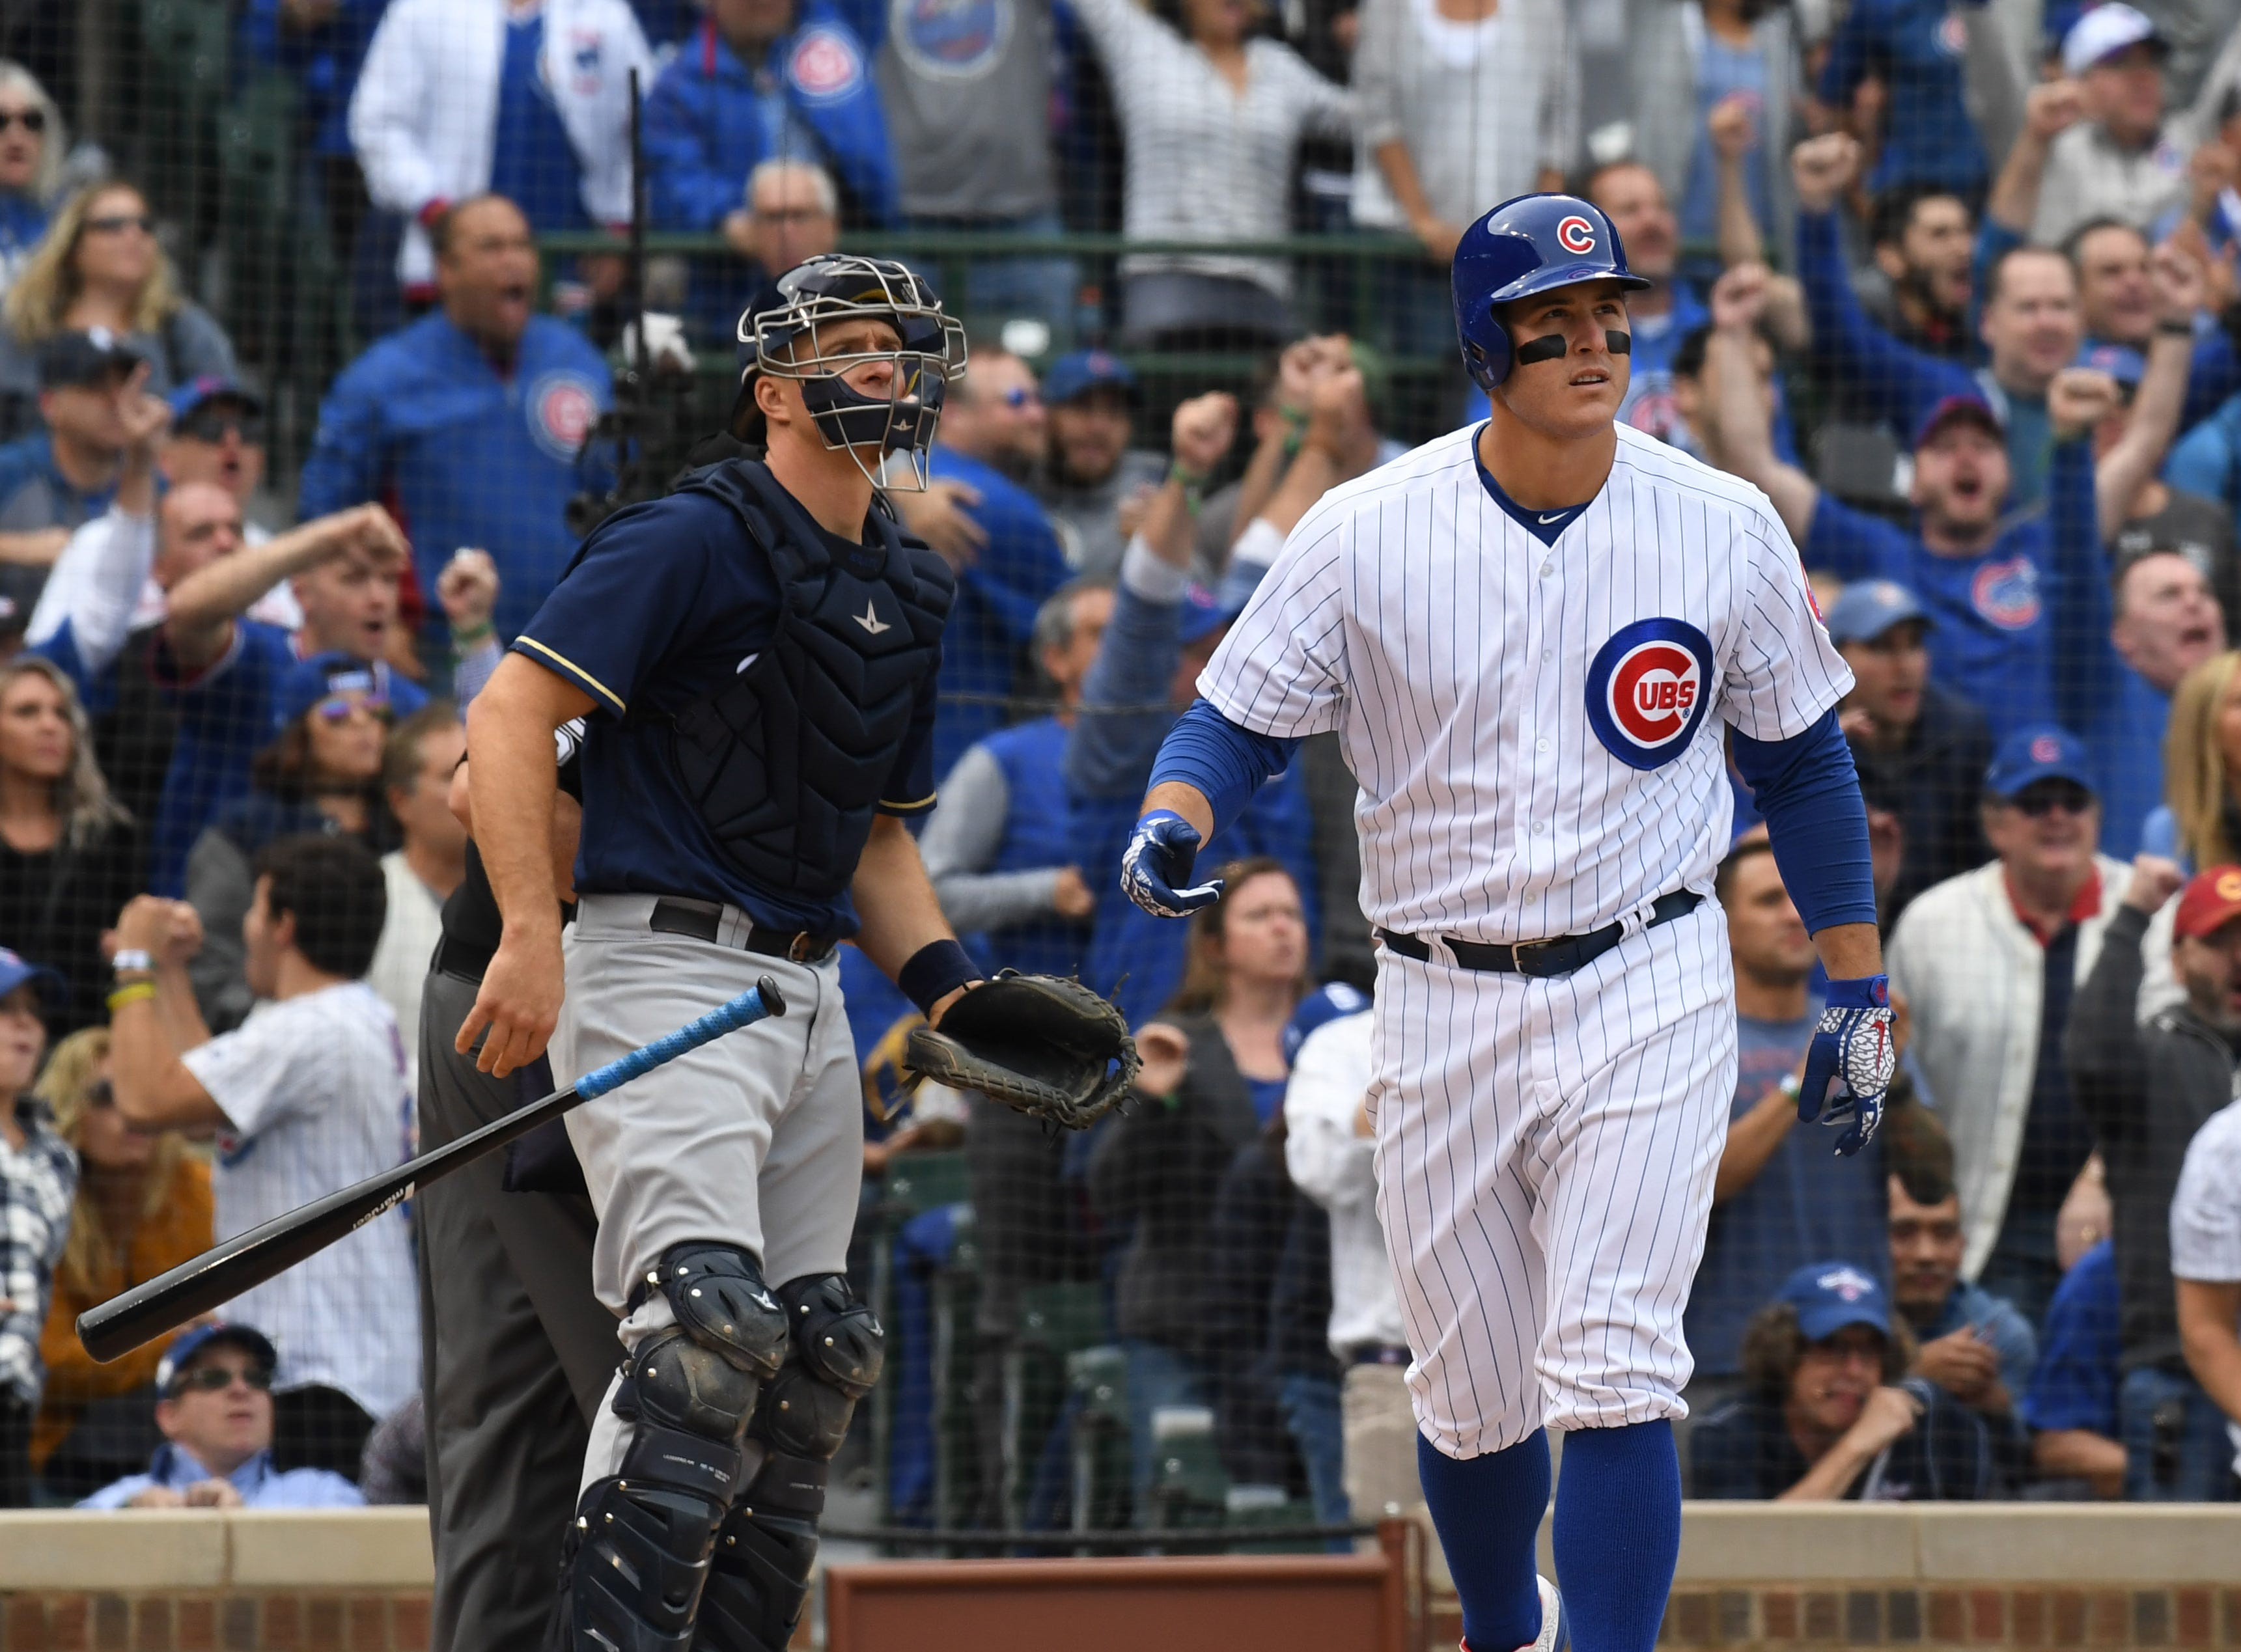 Cubs first baseman Anthony Rizzo watches his solo home run in the fifth inning.